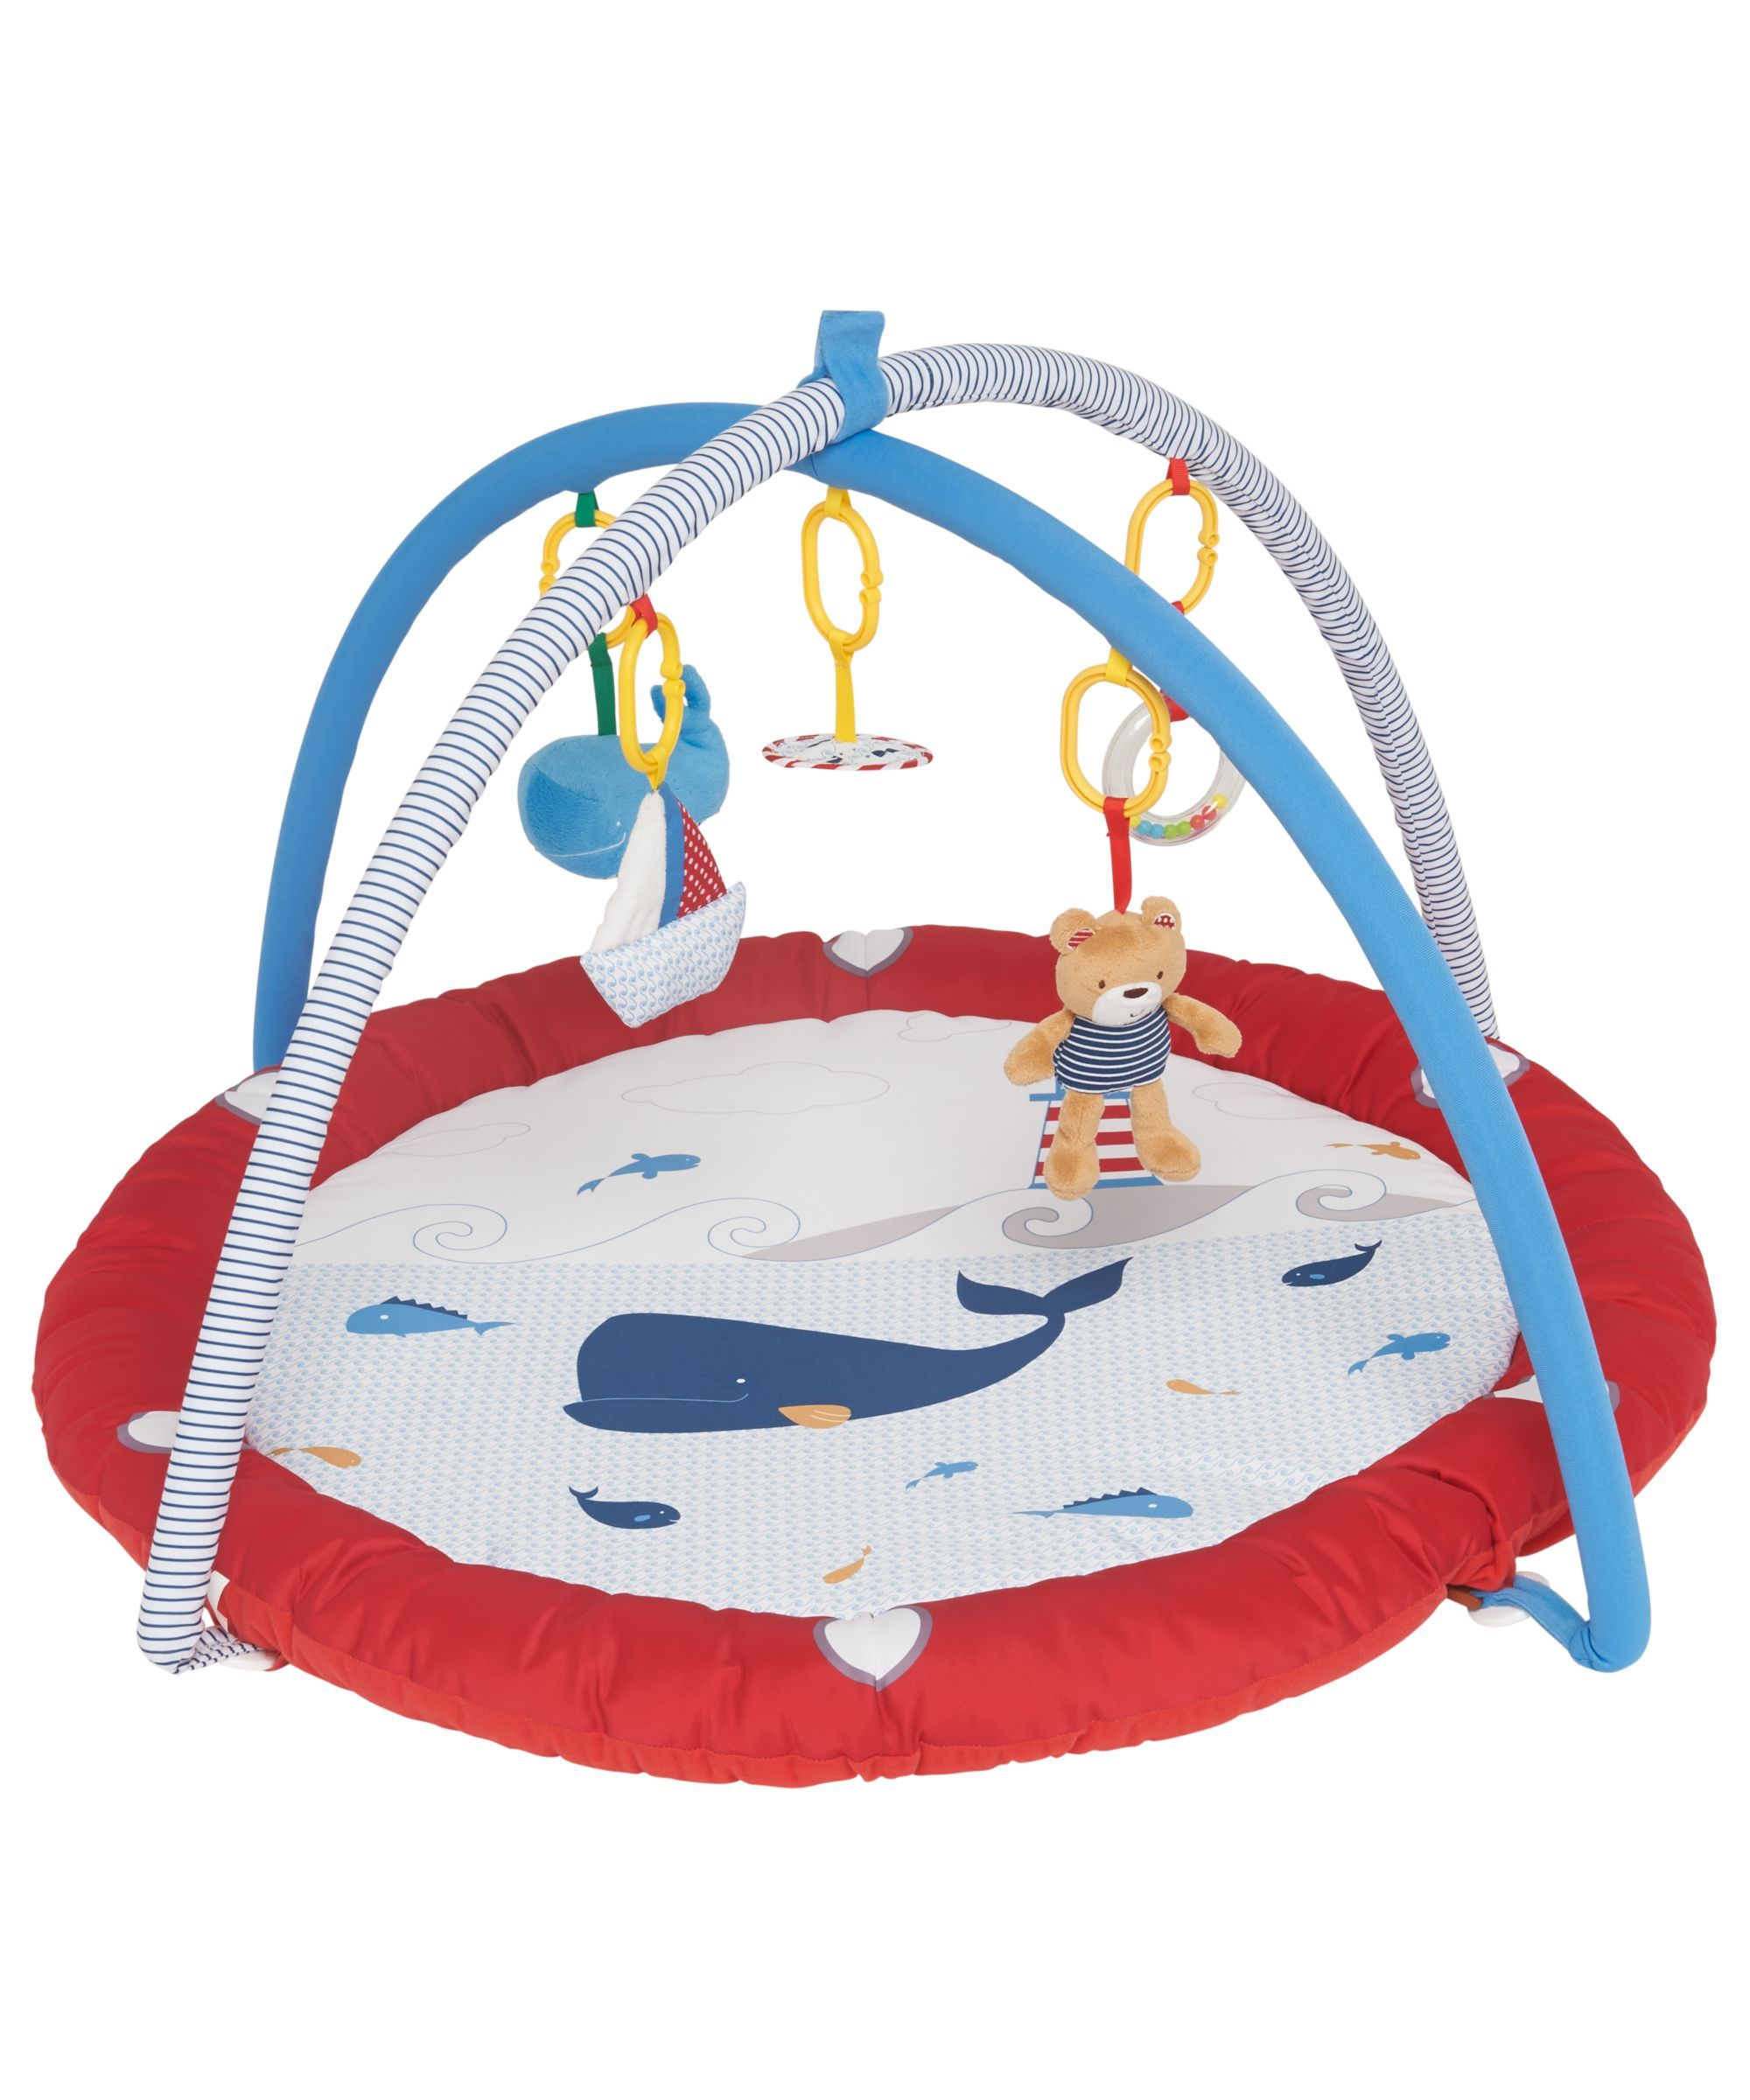 Mothercare Nautical Bedding: Mothercare Whale Bay Playmat